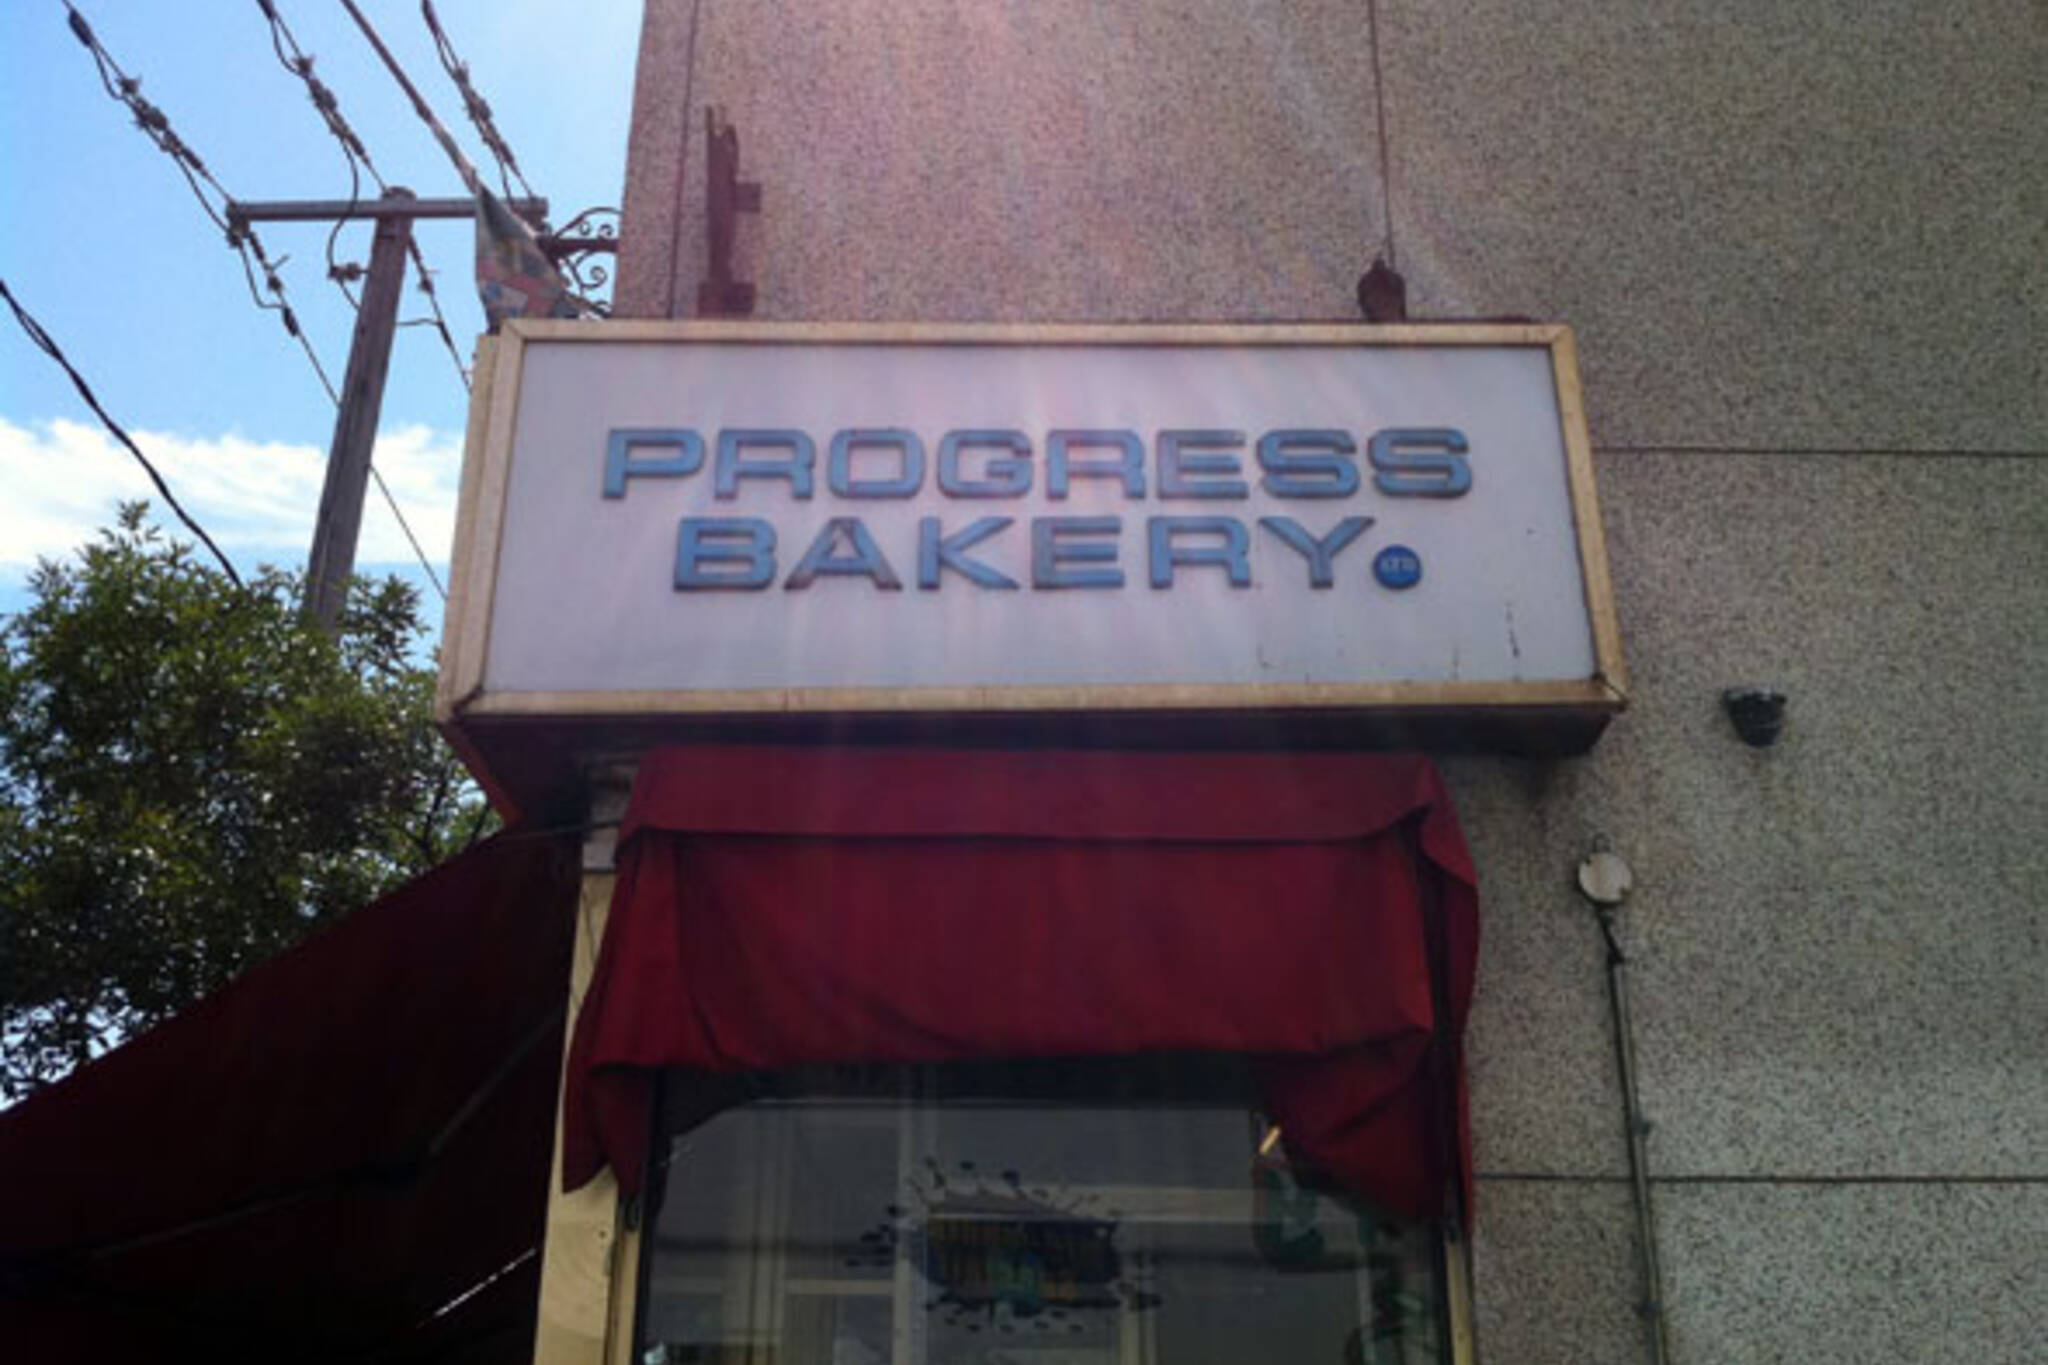 Progress Bakery